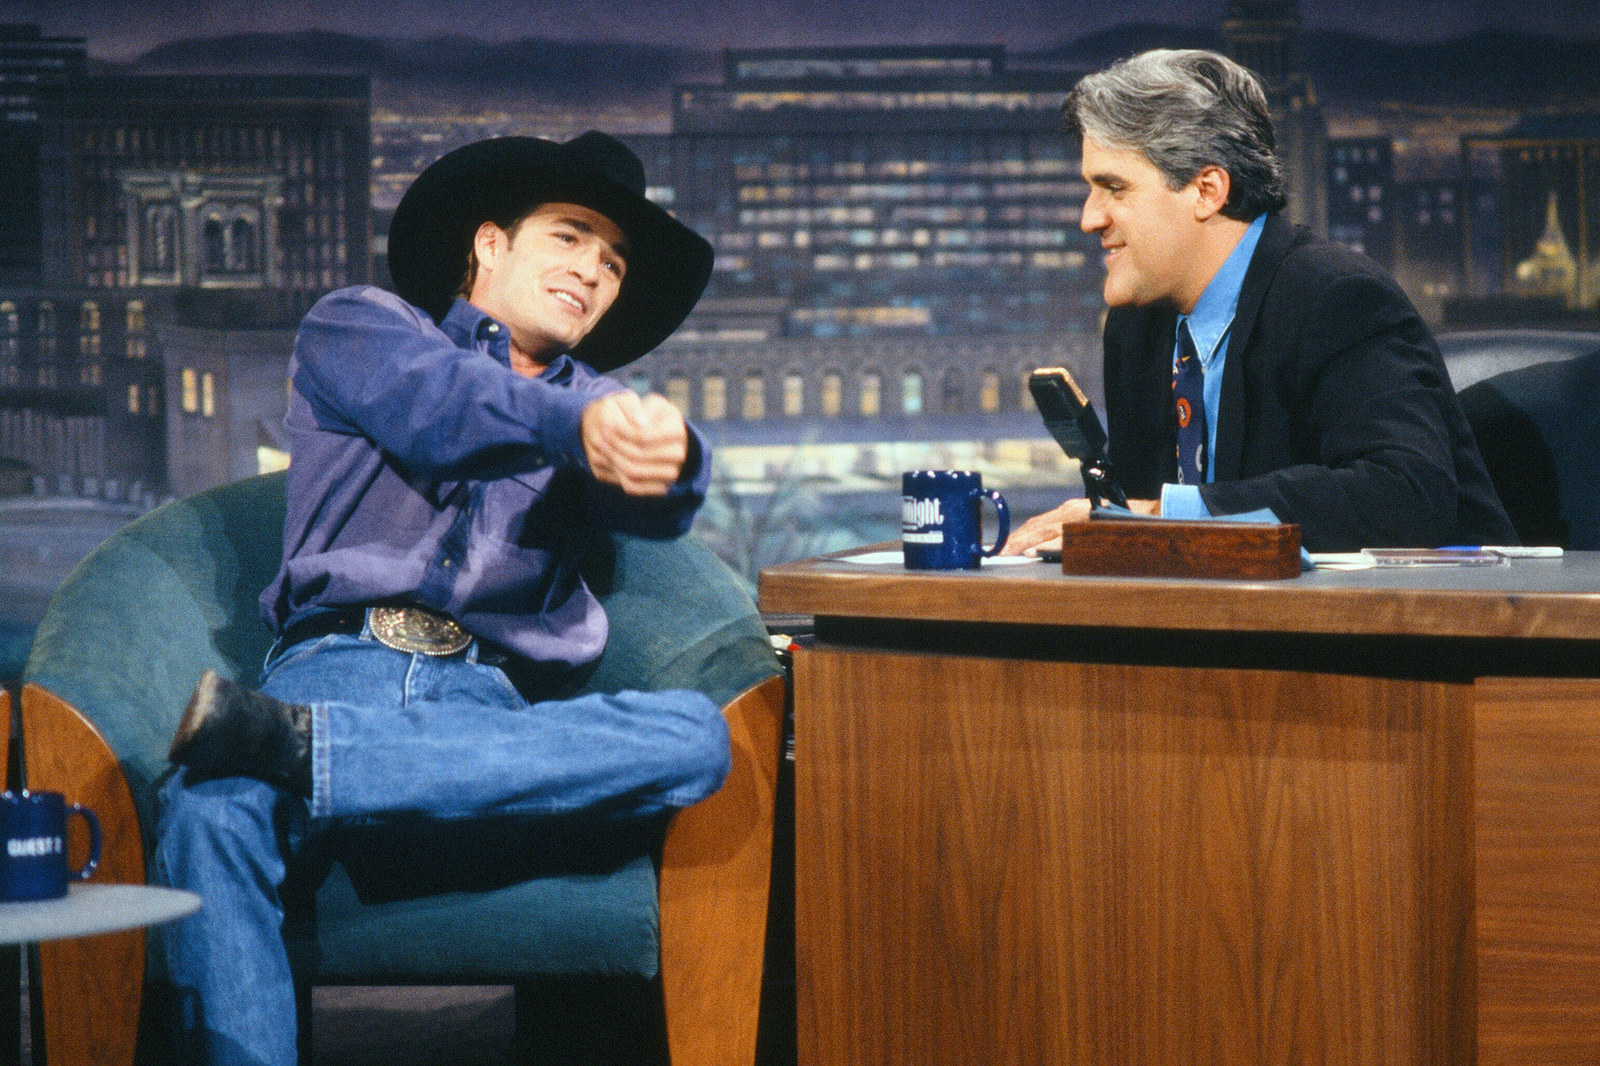 Luke Perry during an interview with host Jay Leno on Aug. 30, 1993.